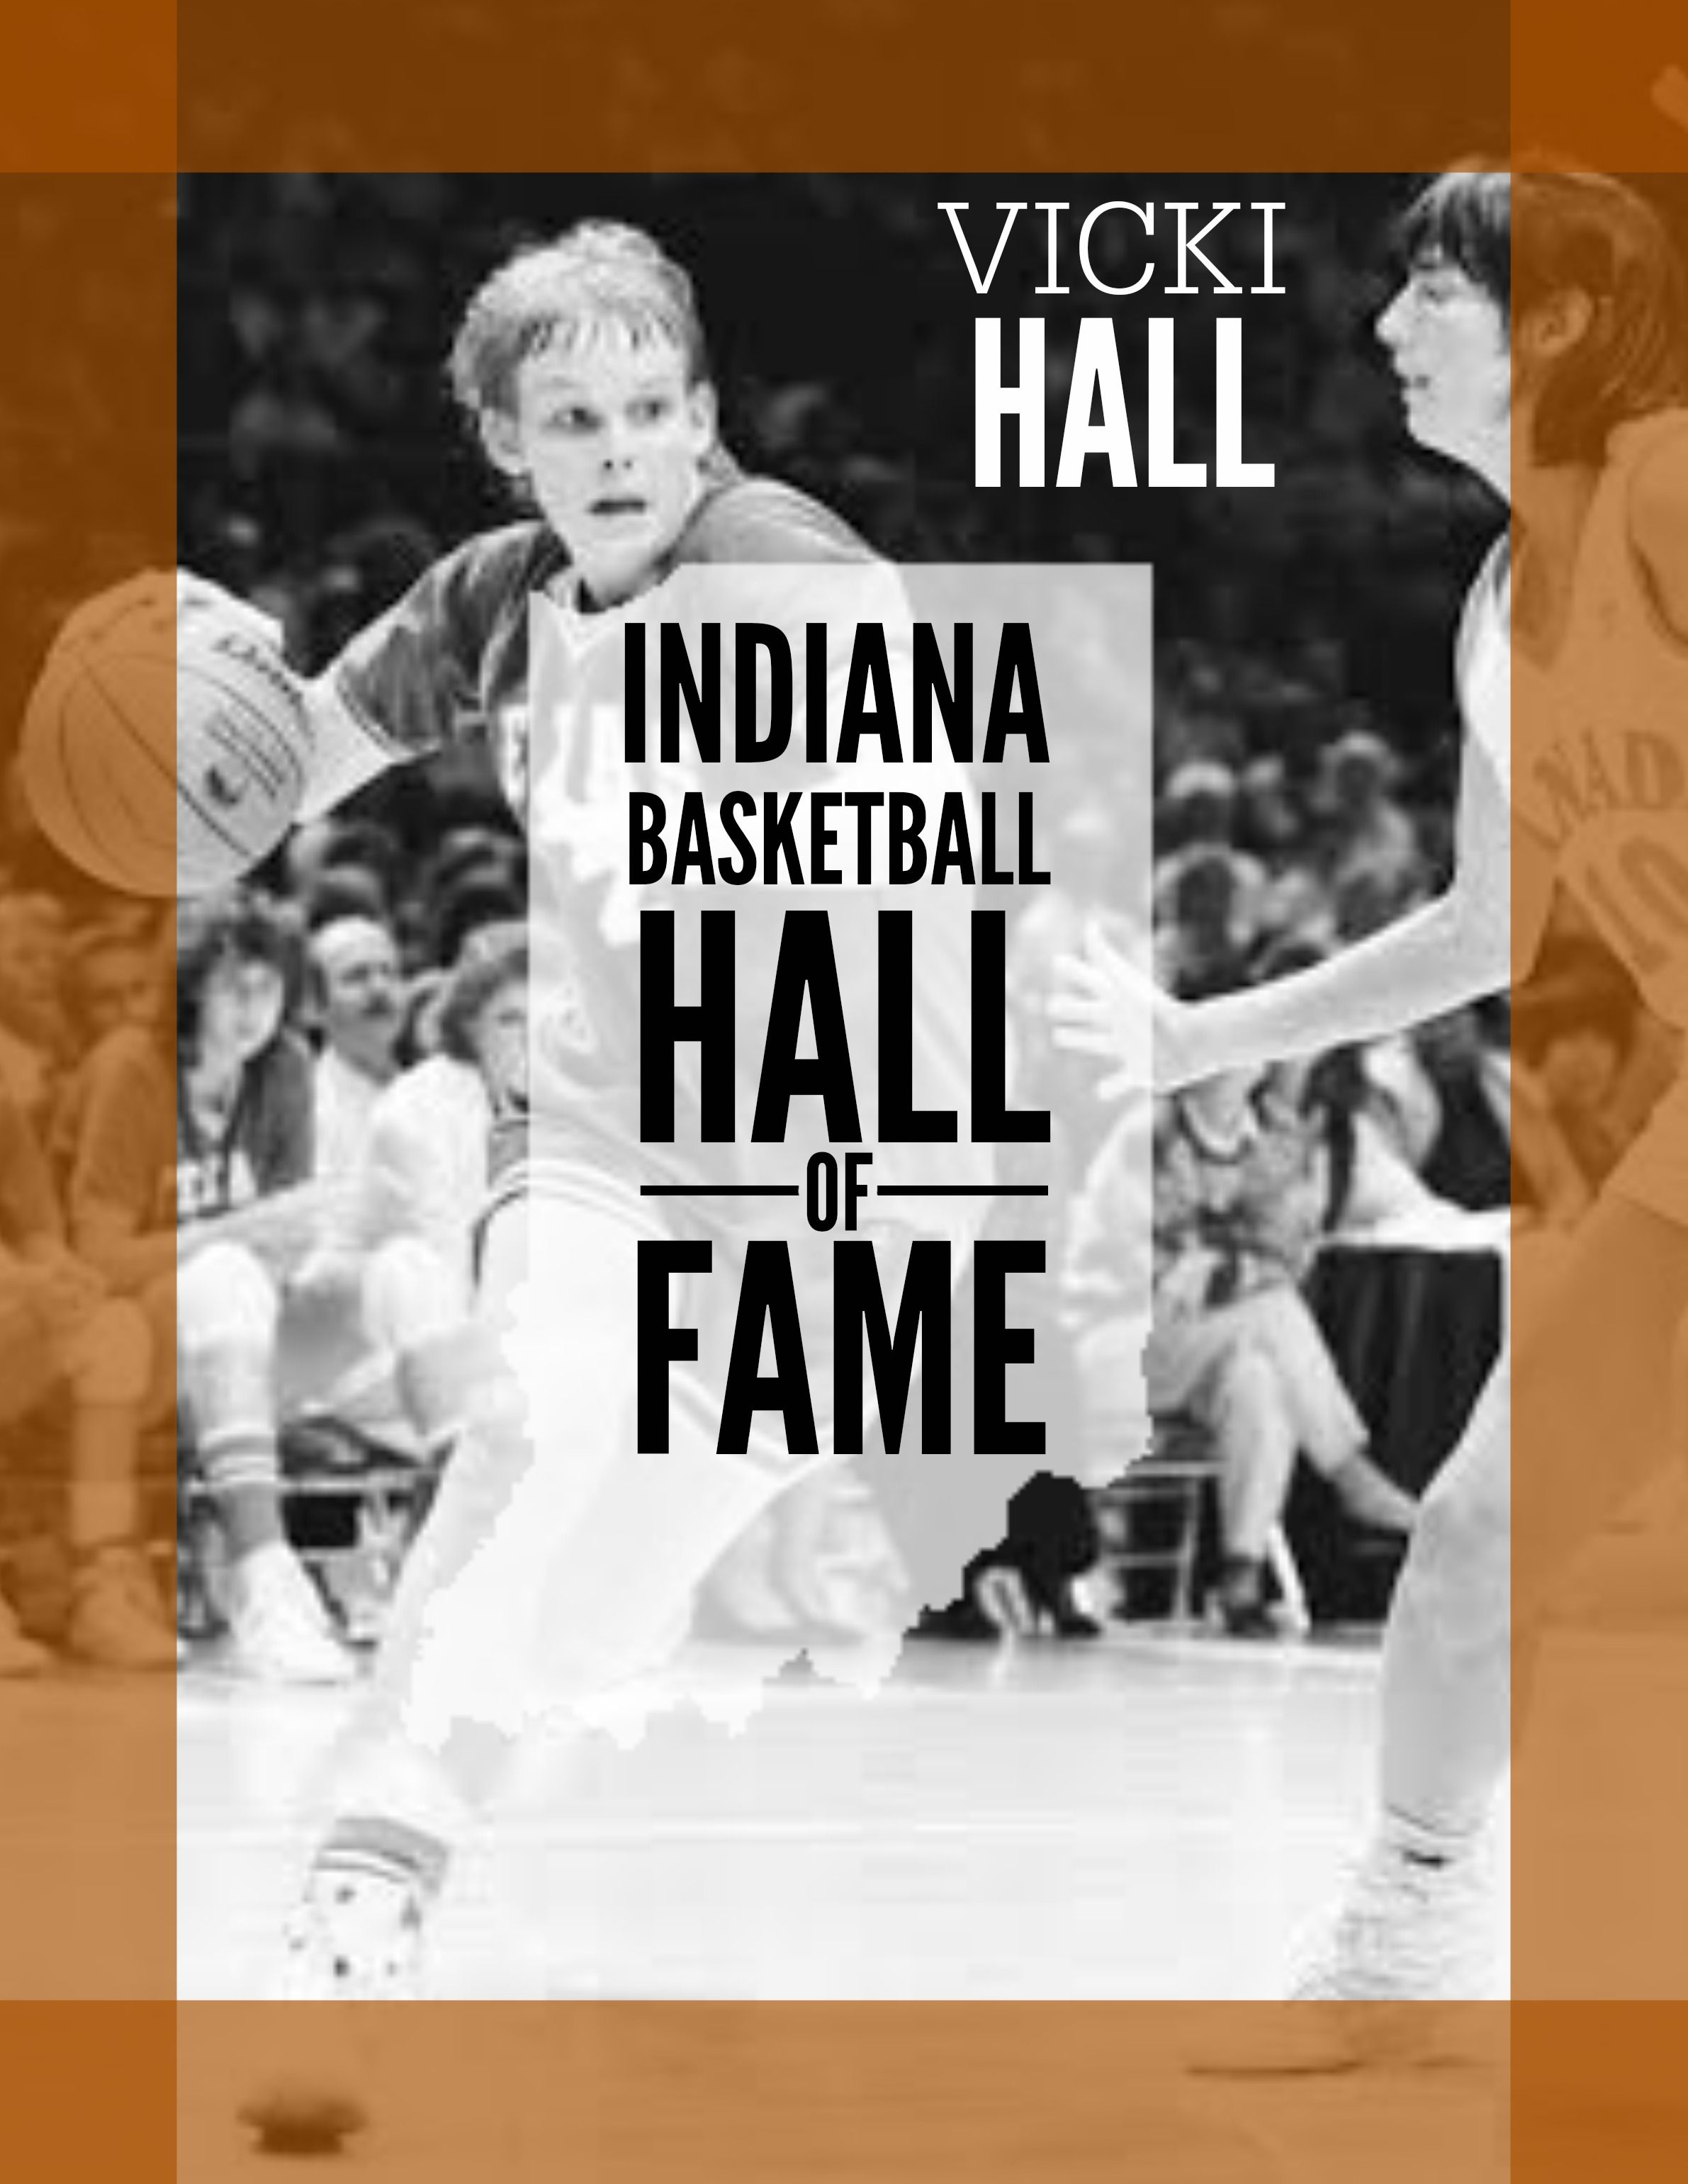 Congrats Texas Ex @vhhoops Vicki Hall on Indiana Hall of Fame honor! #HornsUp